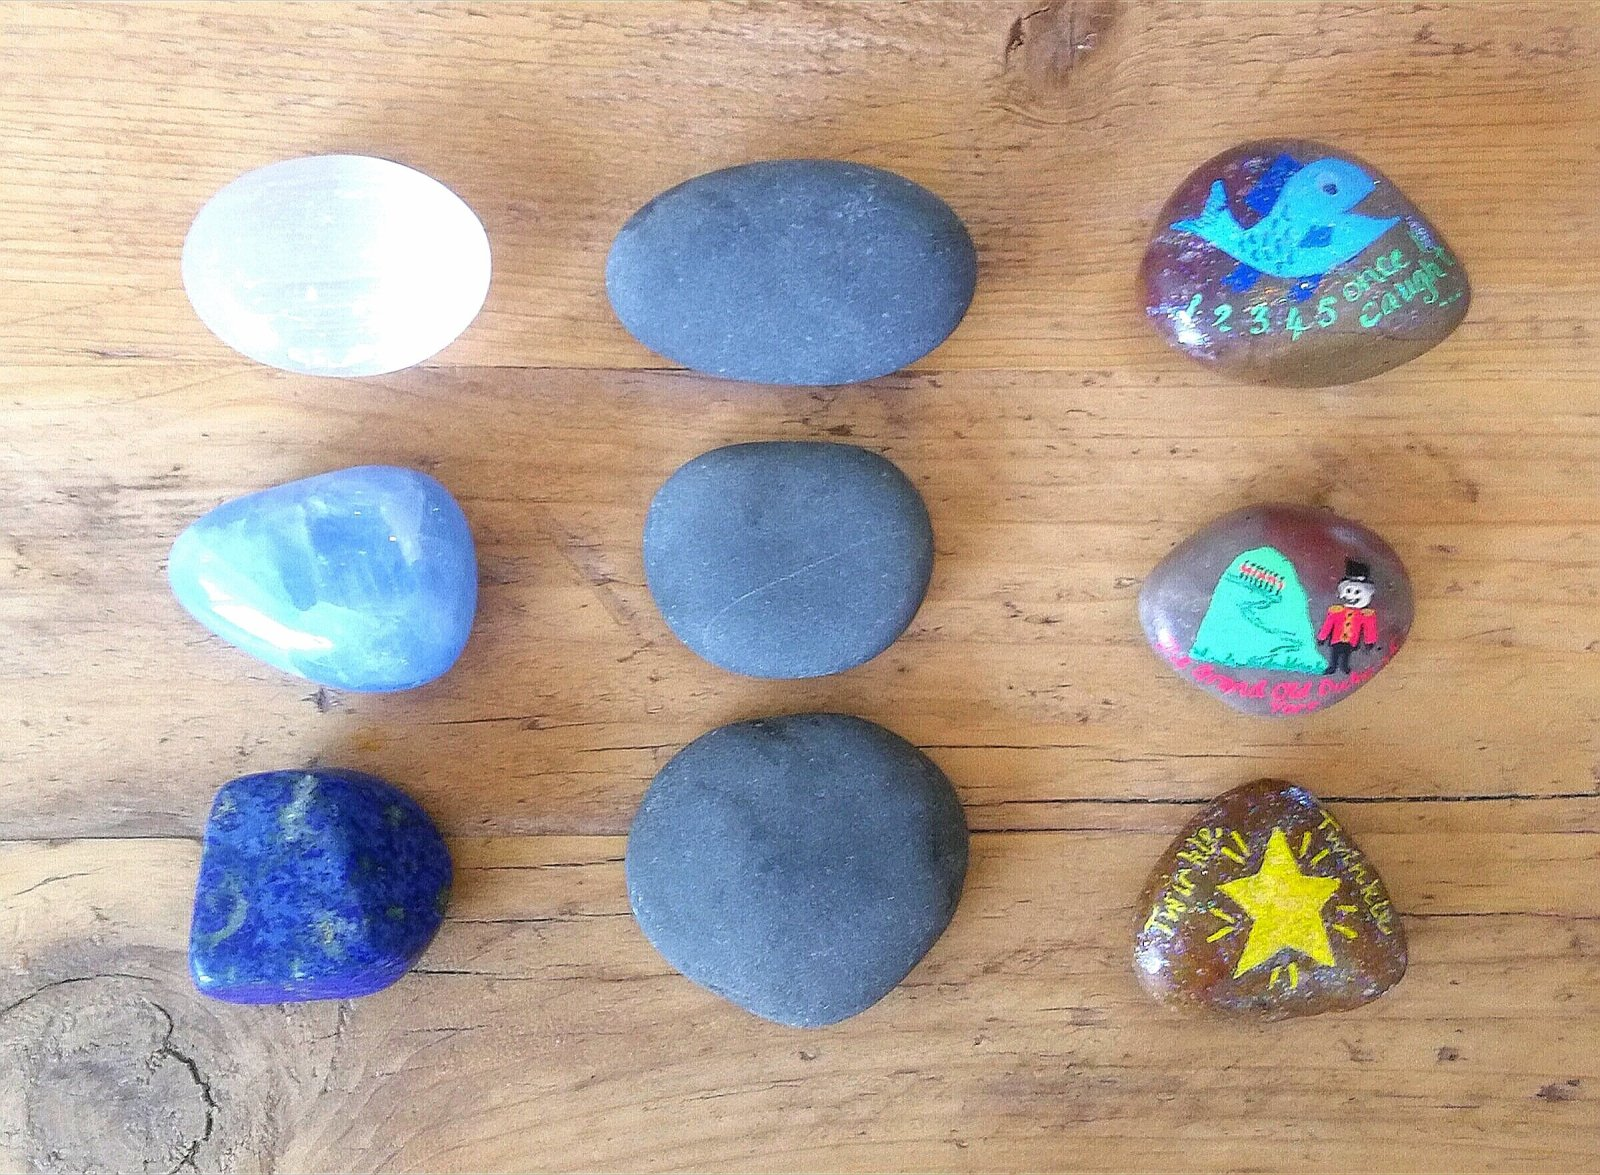 Fun 5 for Friday. Finger Gym. Fine motor activities. Fine motor skills. Language skills. Social play. Small world. Suitcase play. Stacking. Containing. Sorting. Enclosing. Schema. Natural. Wooden toys. Grimms. Fabric. Puppets. Gems. Stones. Books. Stories. Reading.